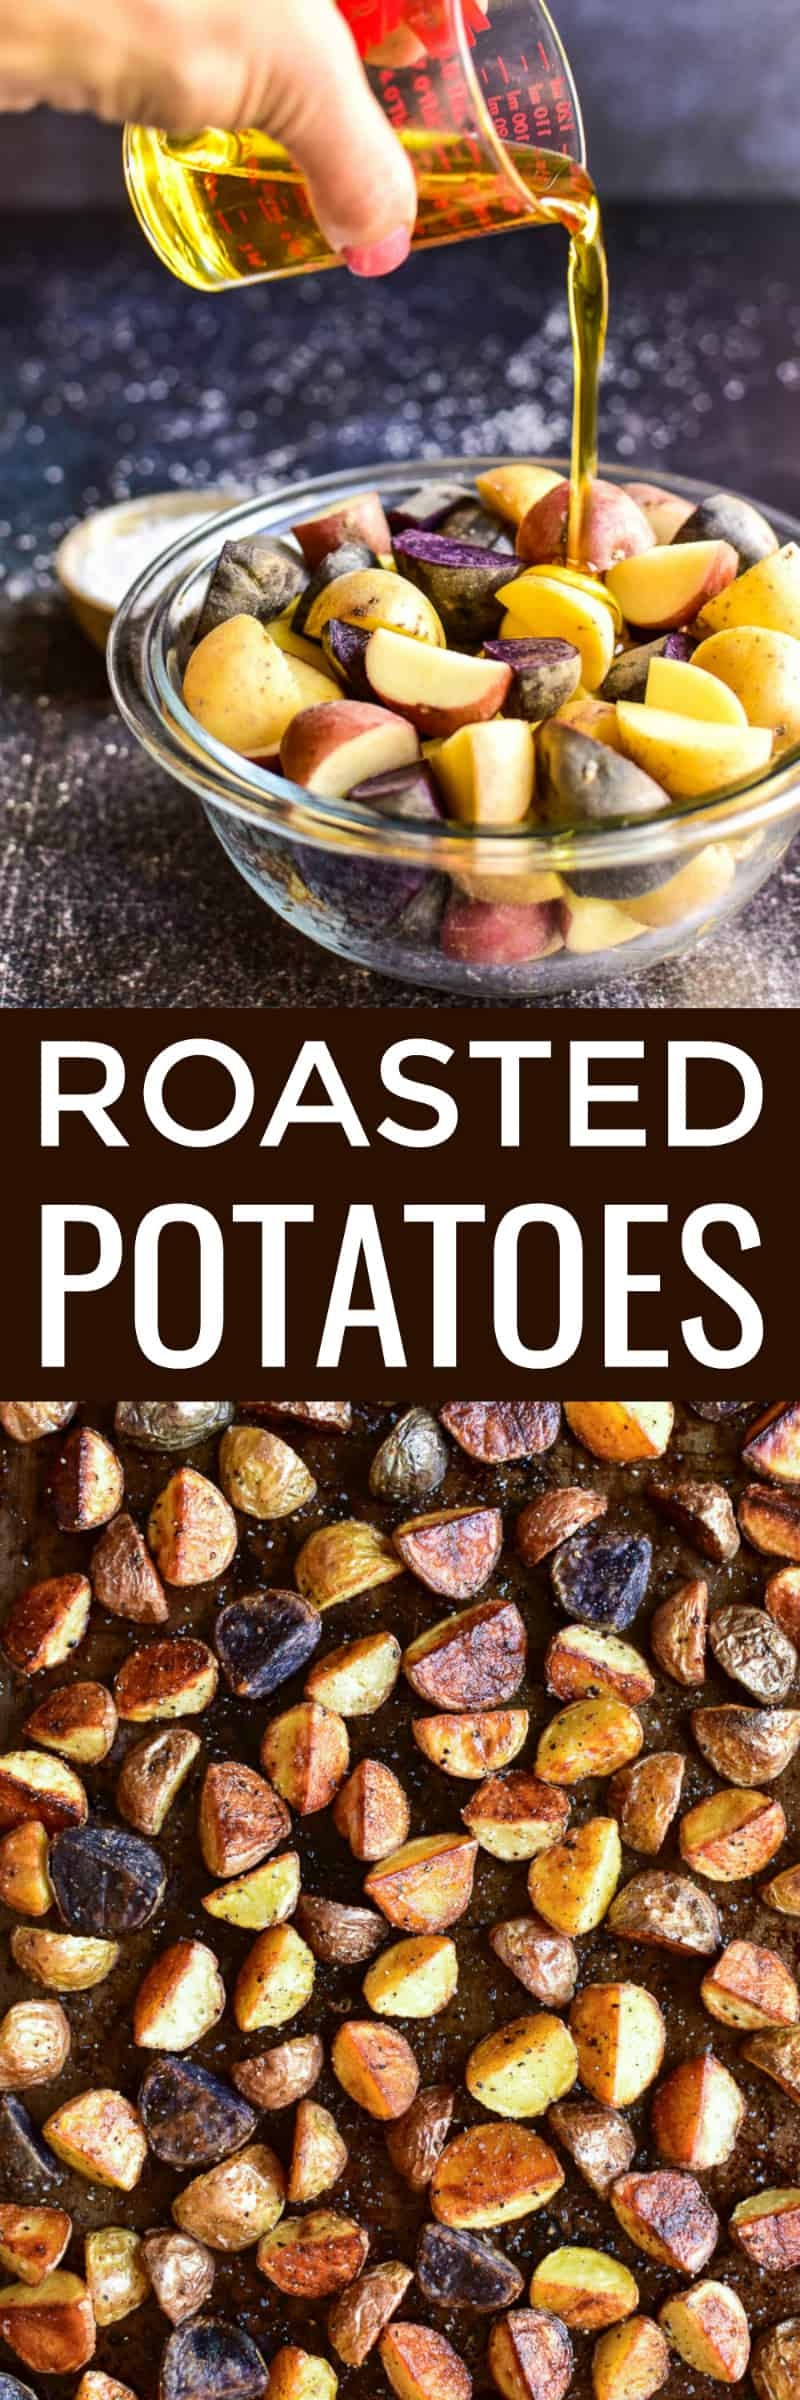 Roasted Potatoes Collage image